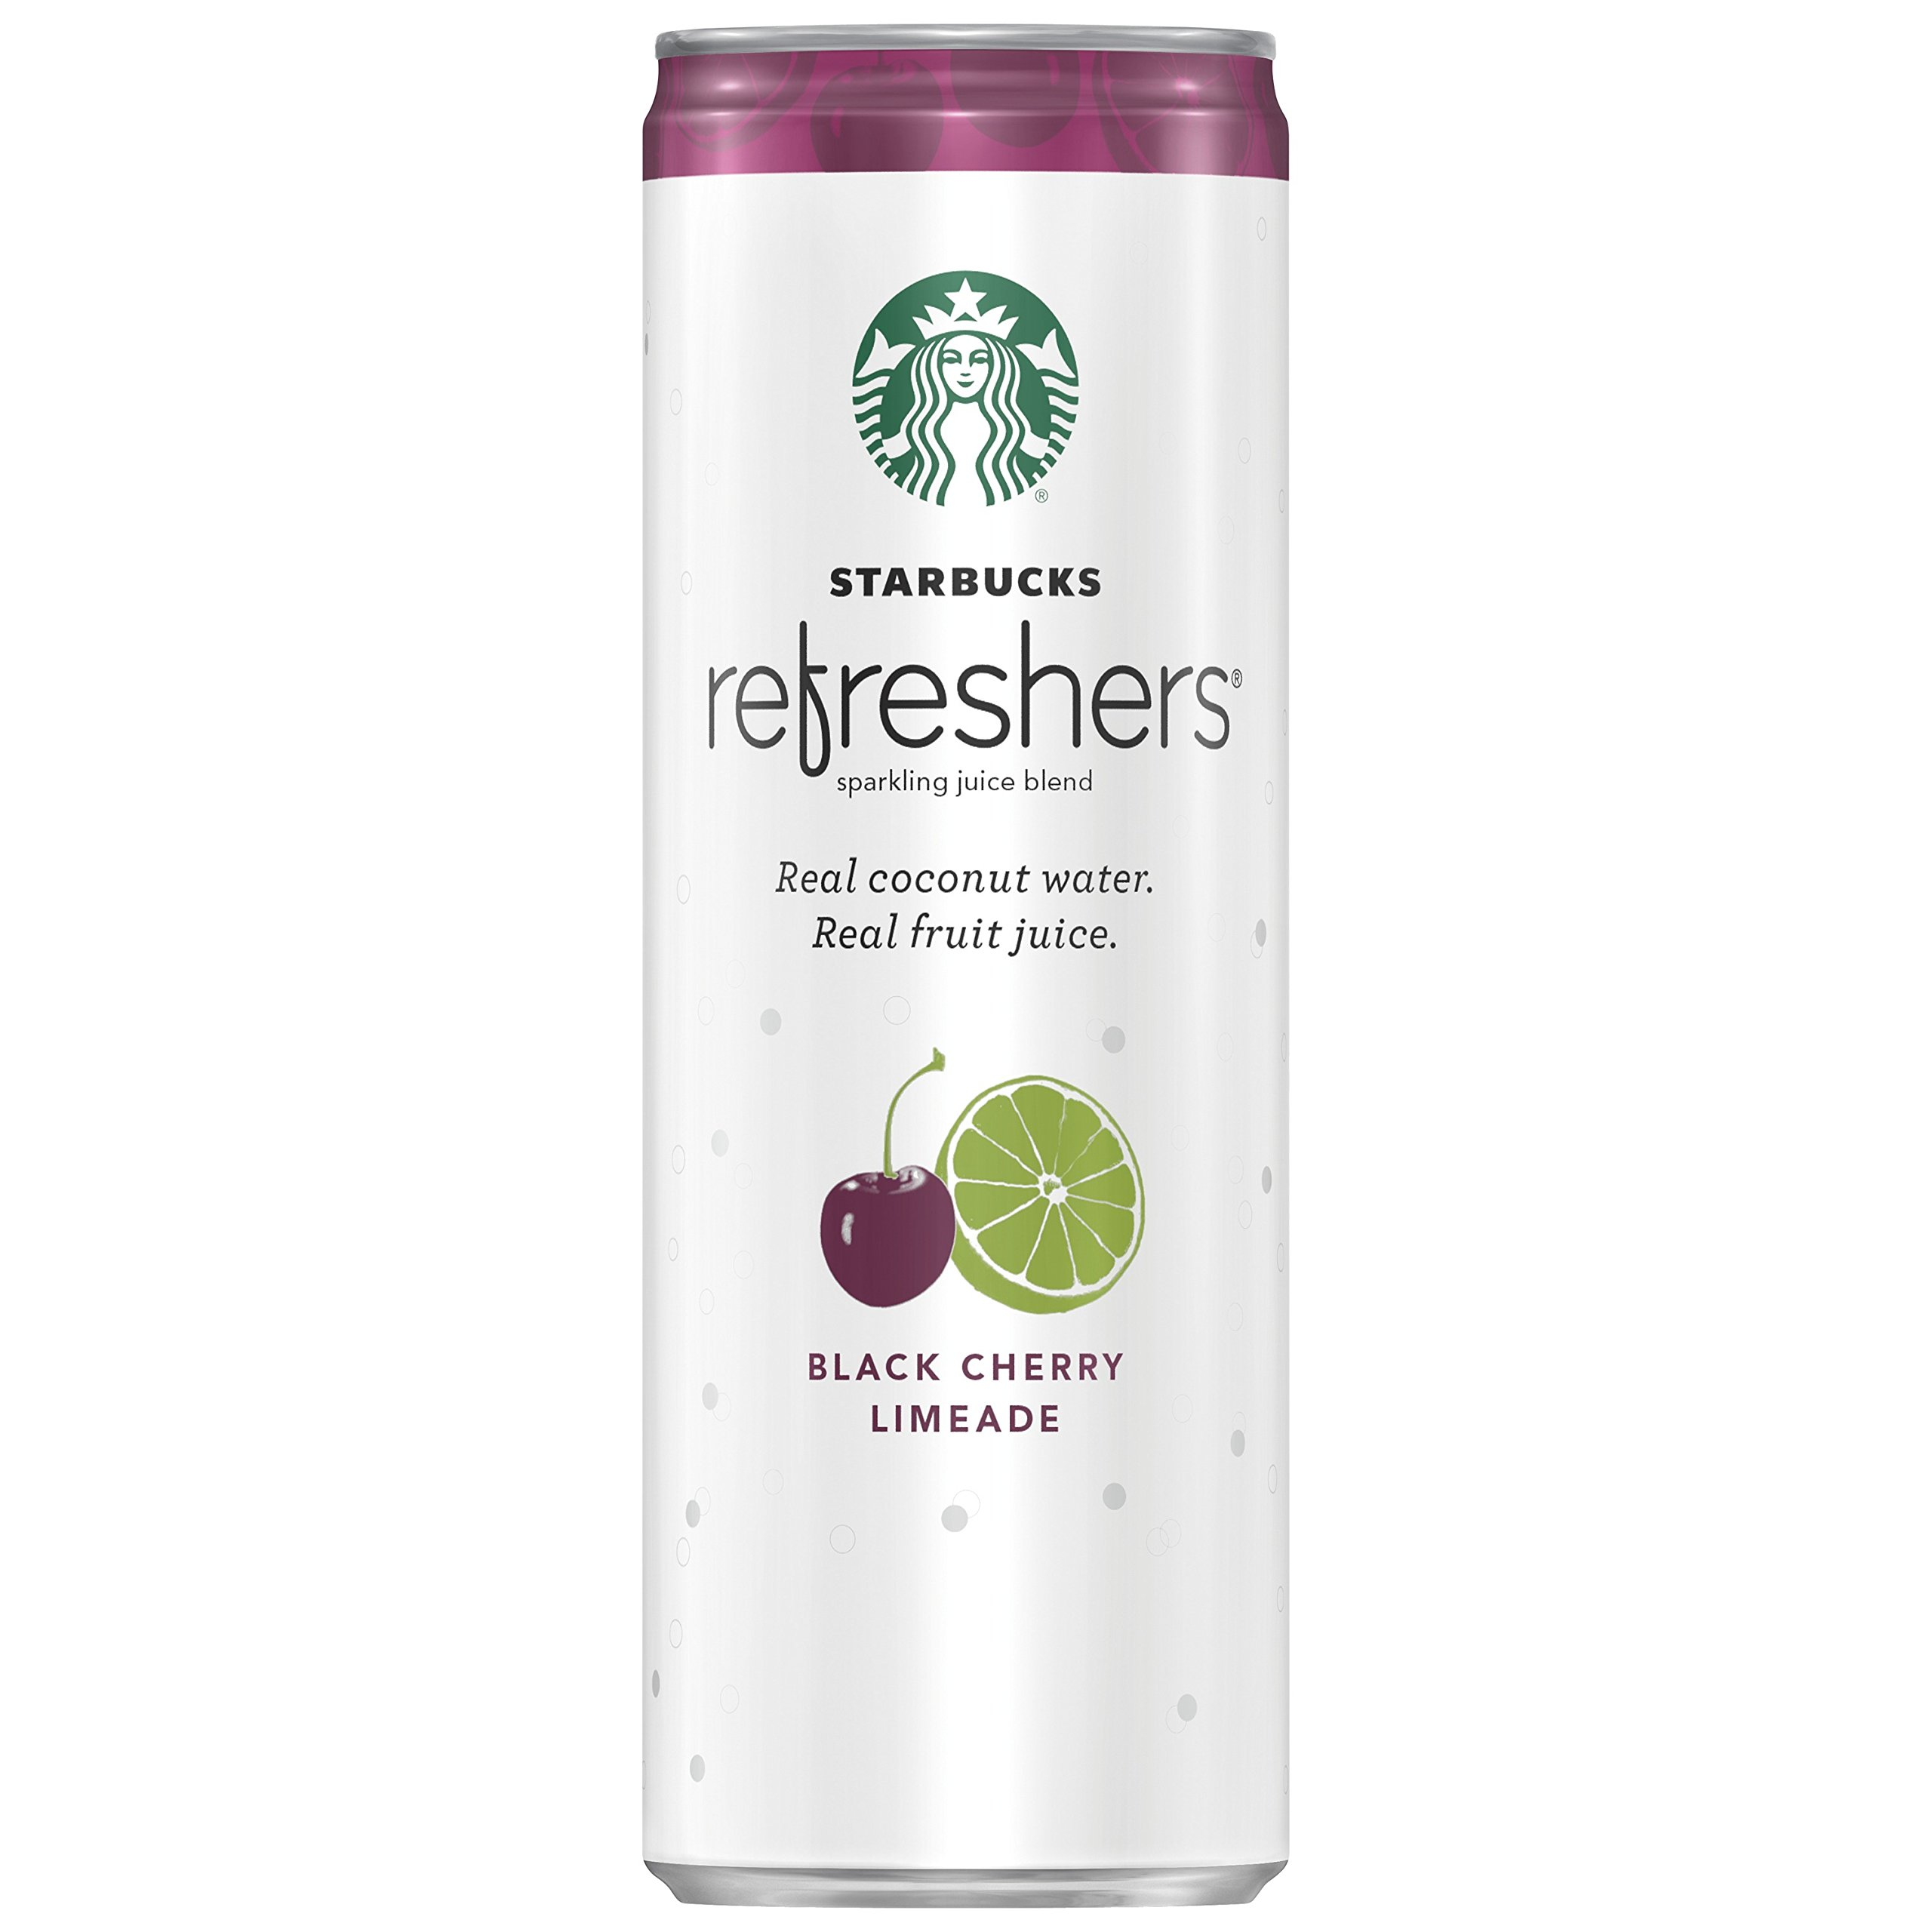 Starbucks Refreshers, Black Cherry Limeade with Coconut Water, 12 Ounce Cans, (Pack of 12) (Packaging May Vary)